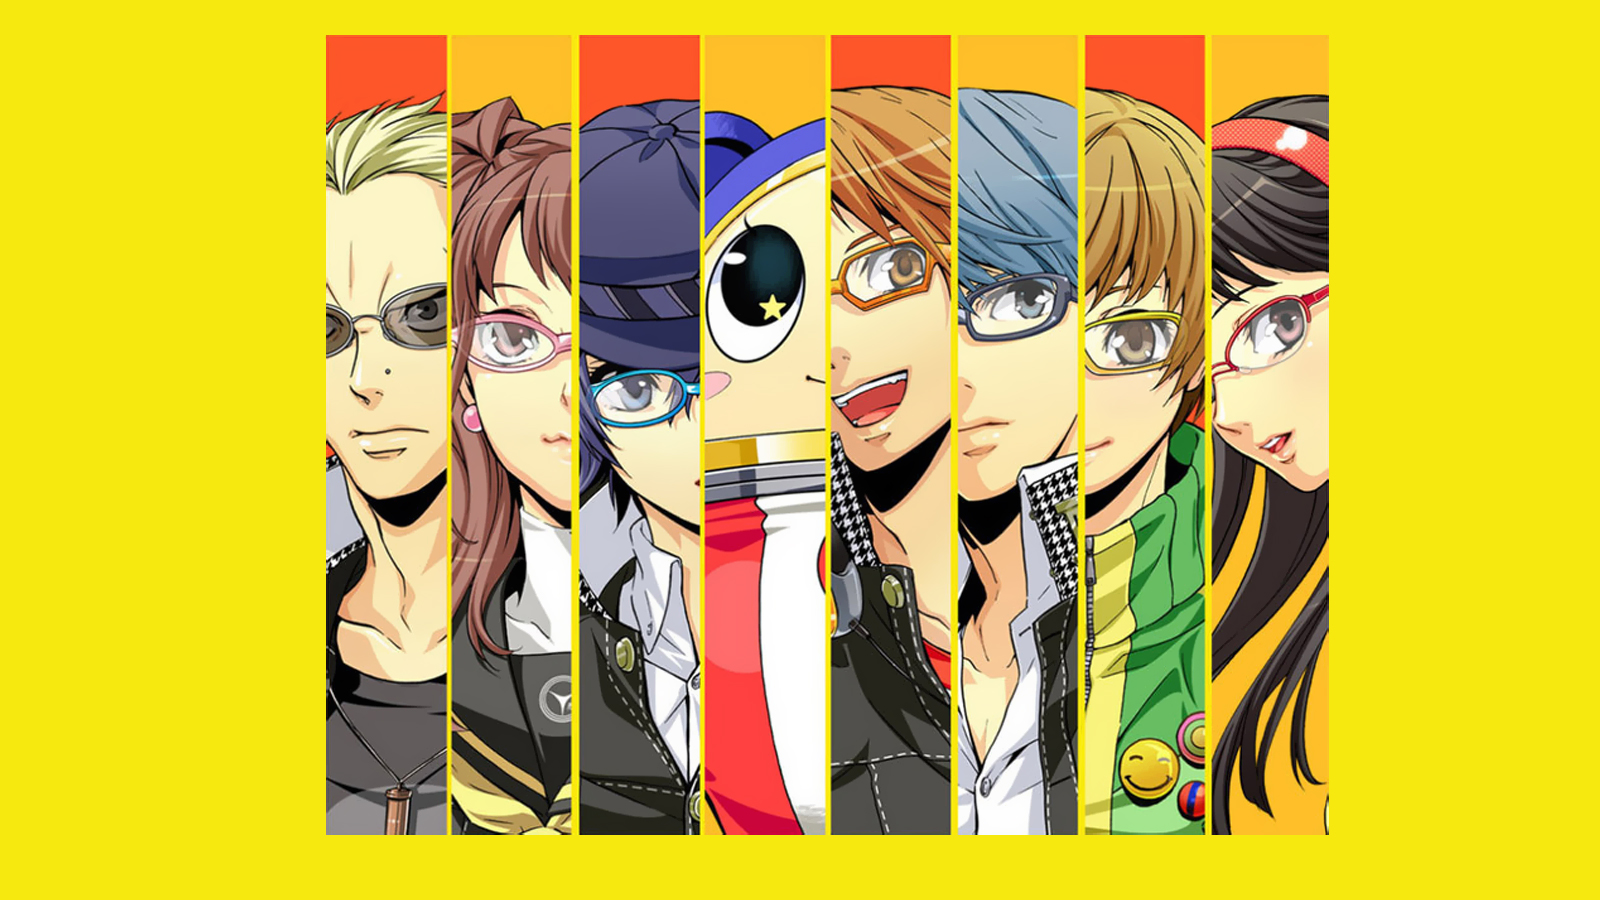 close-up video games glasses long hair Persona series black eyes Persona 4 simple background faces yellow background black hair Amagi Yukiko Soejima Shigenori